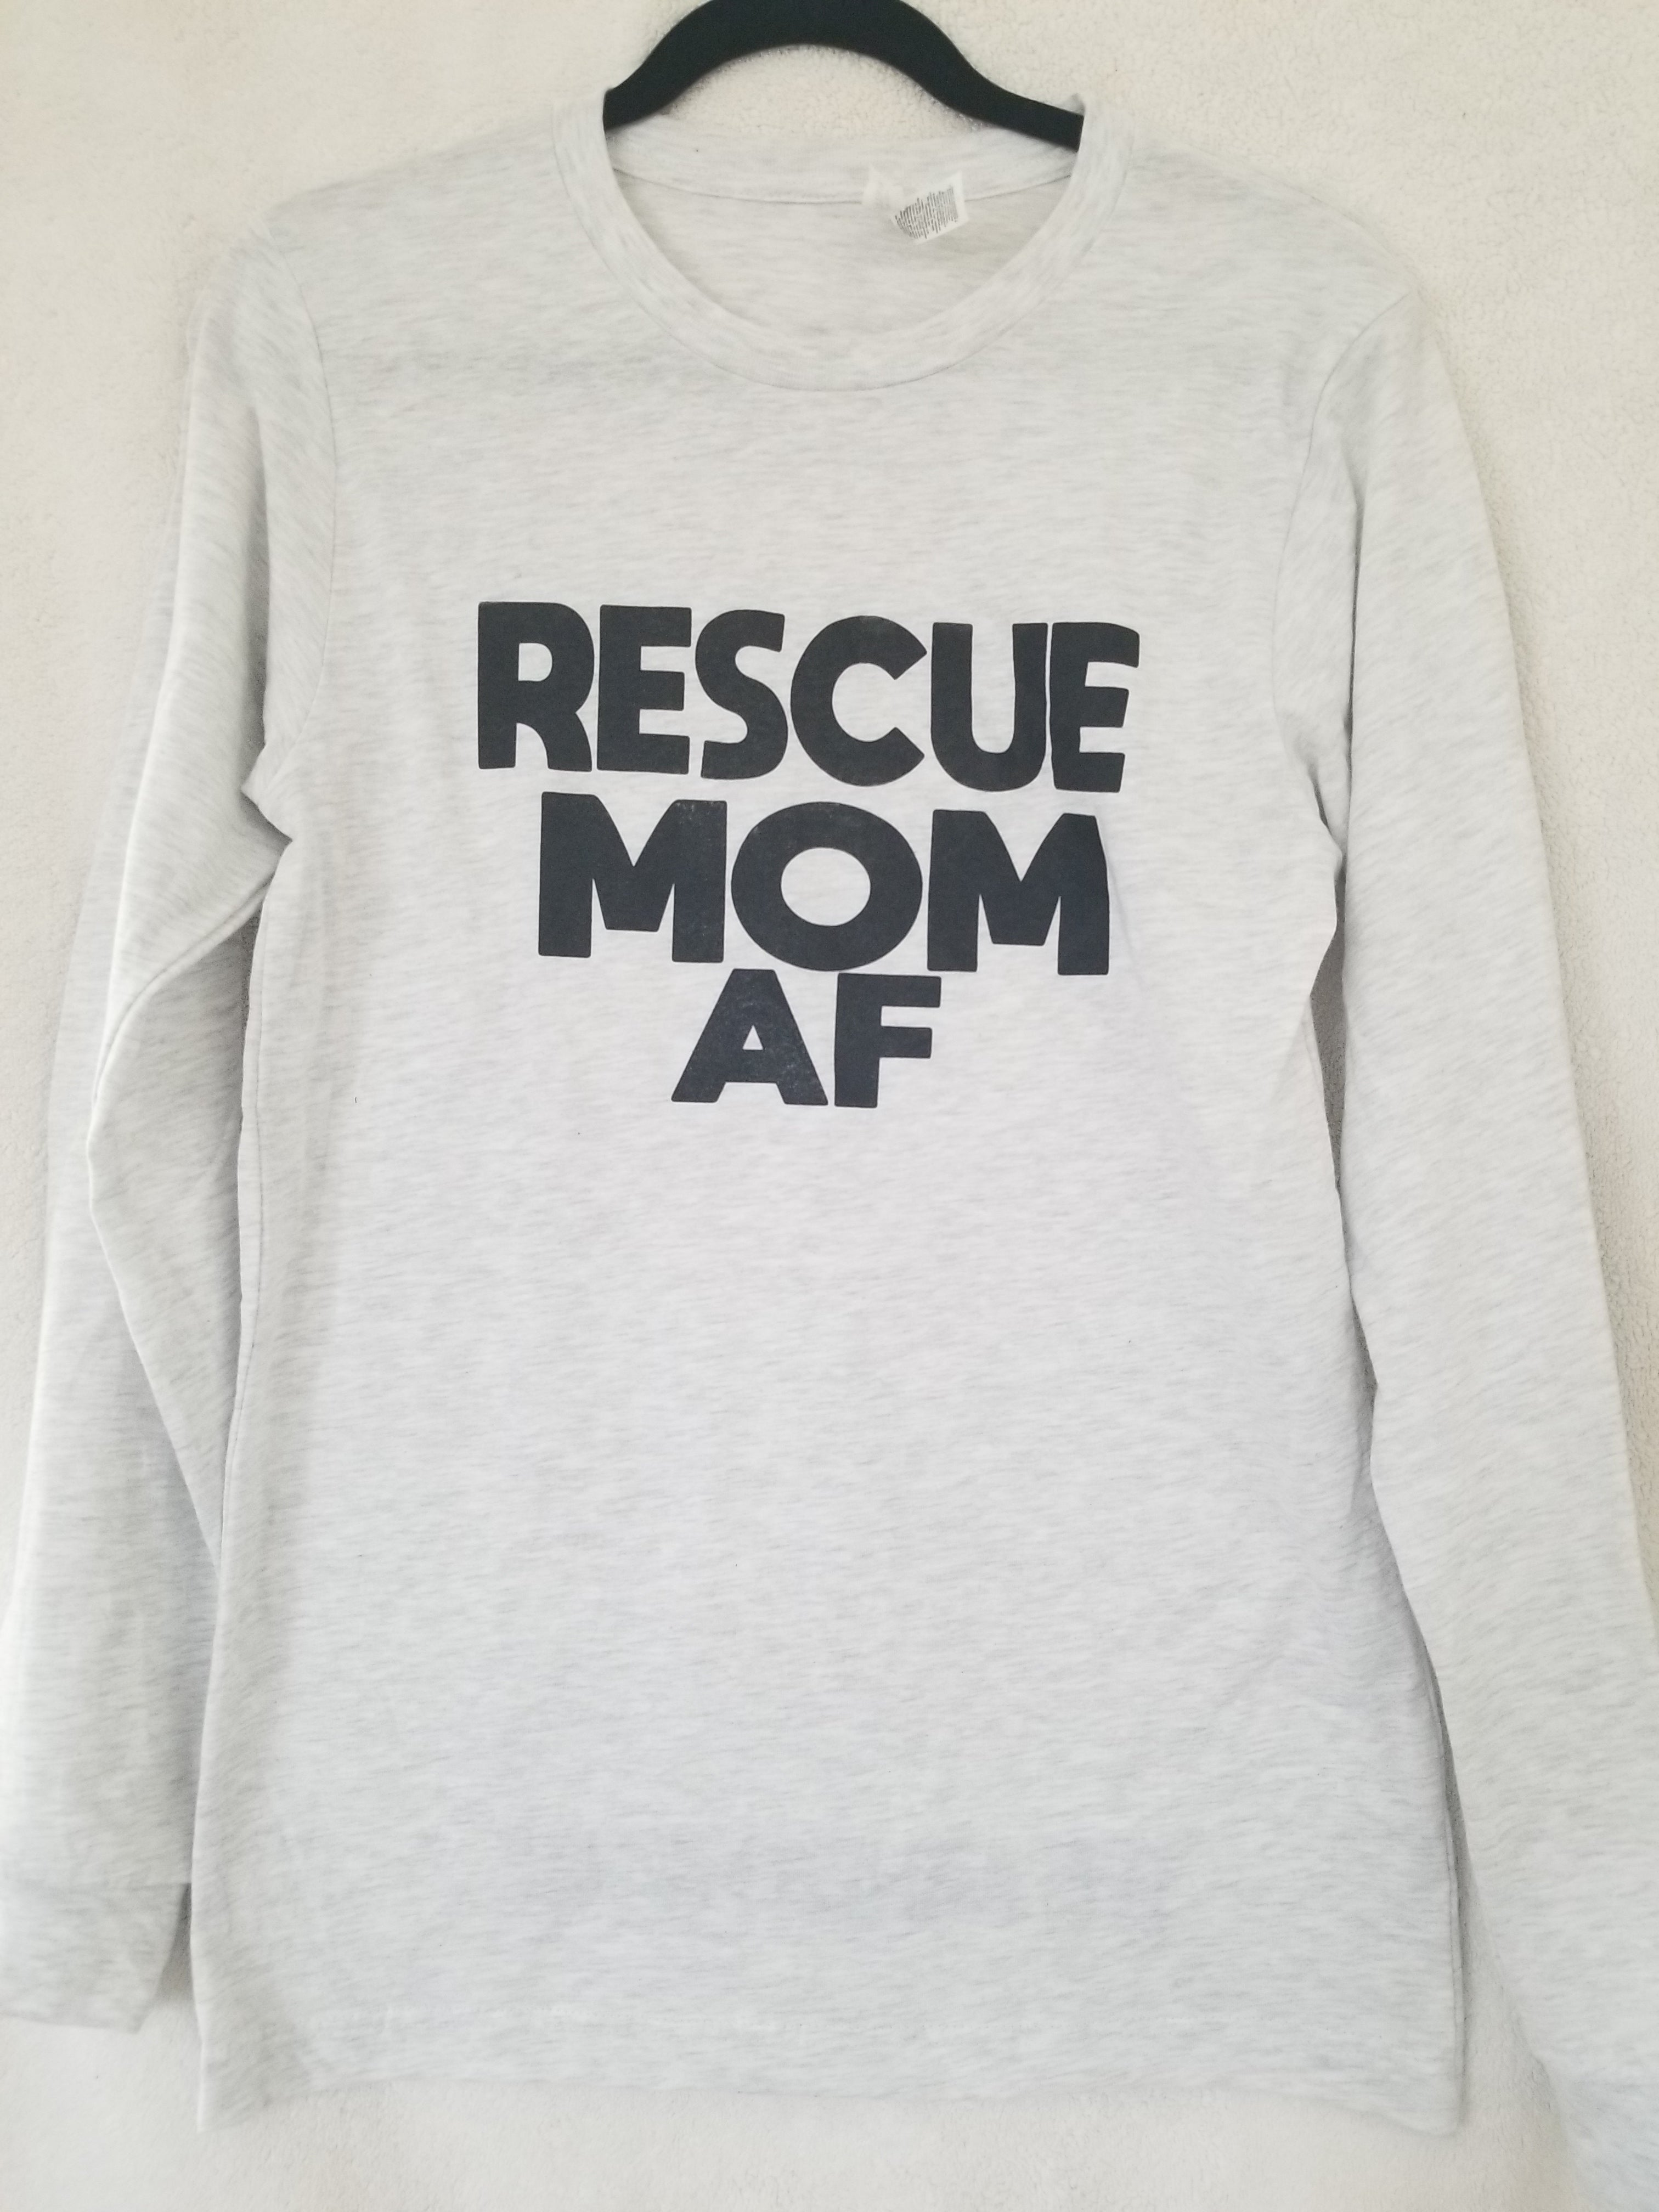 Rescue MOM AF Unisex Longsleeve T-Shirt (2 Colors)